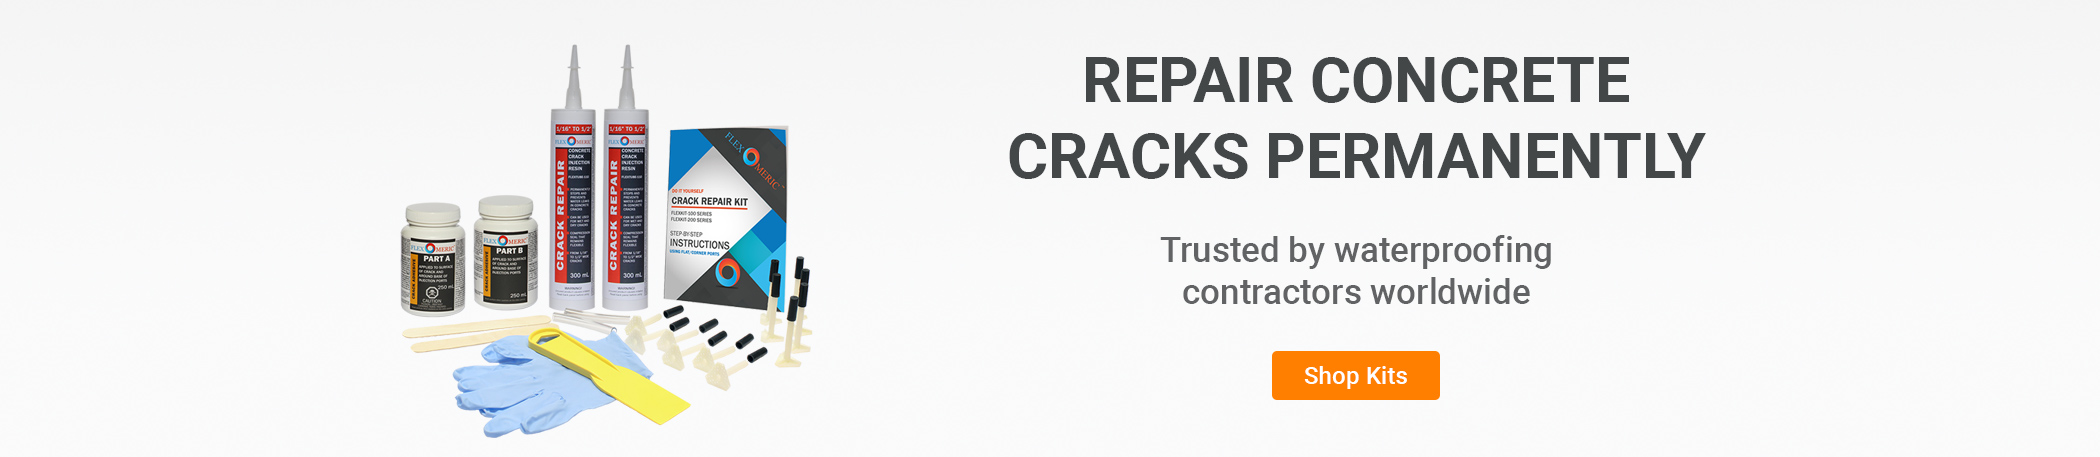 Do it yourself foundation crack repair kits solutioingenieria